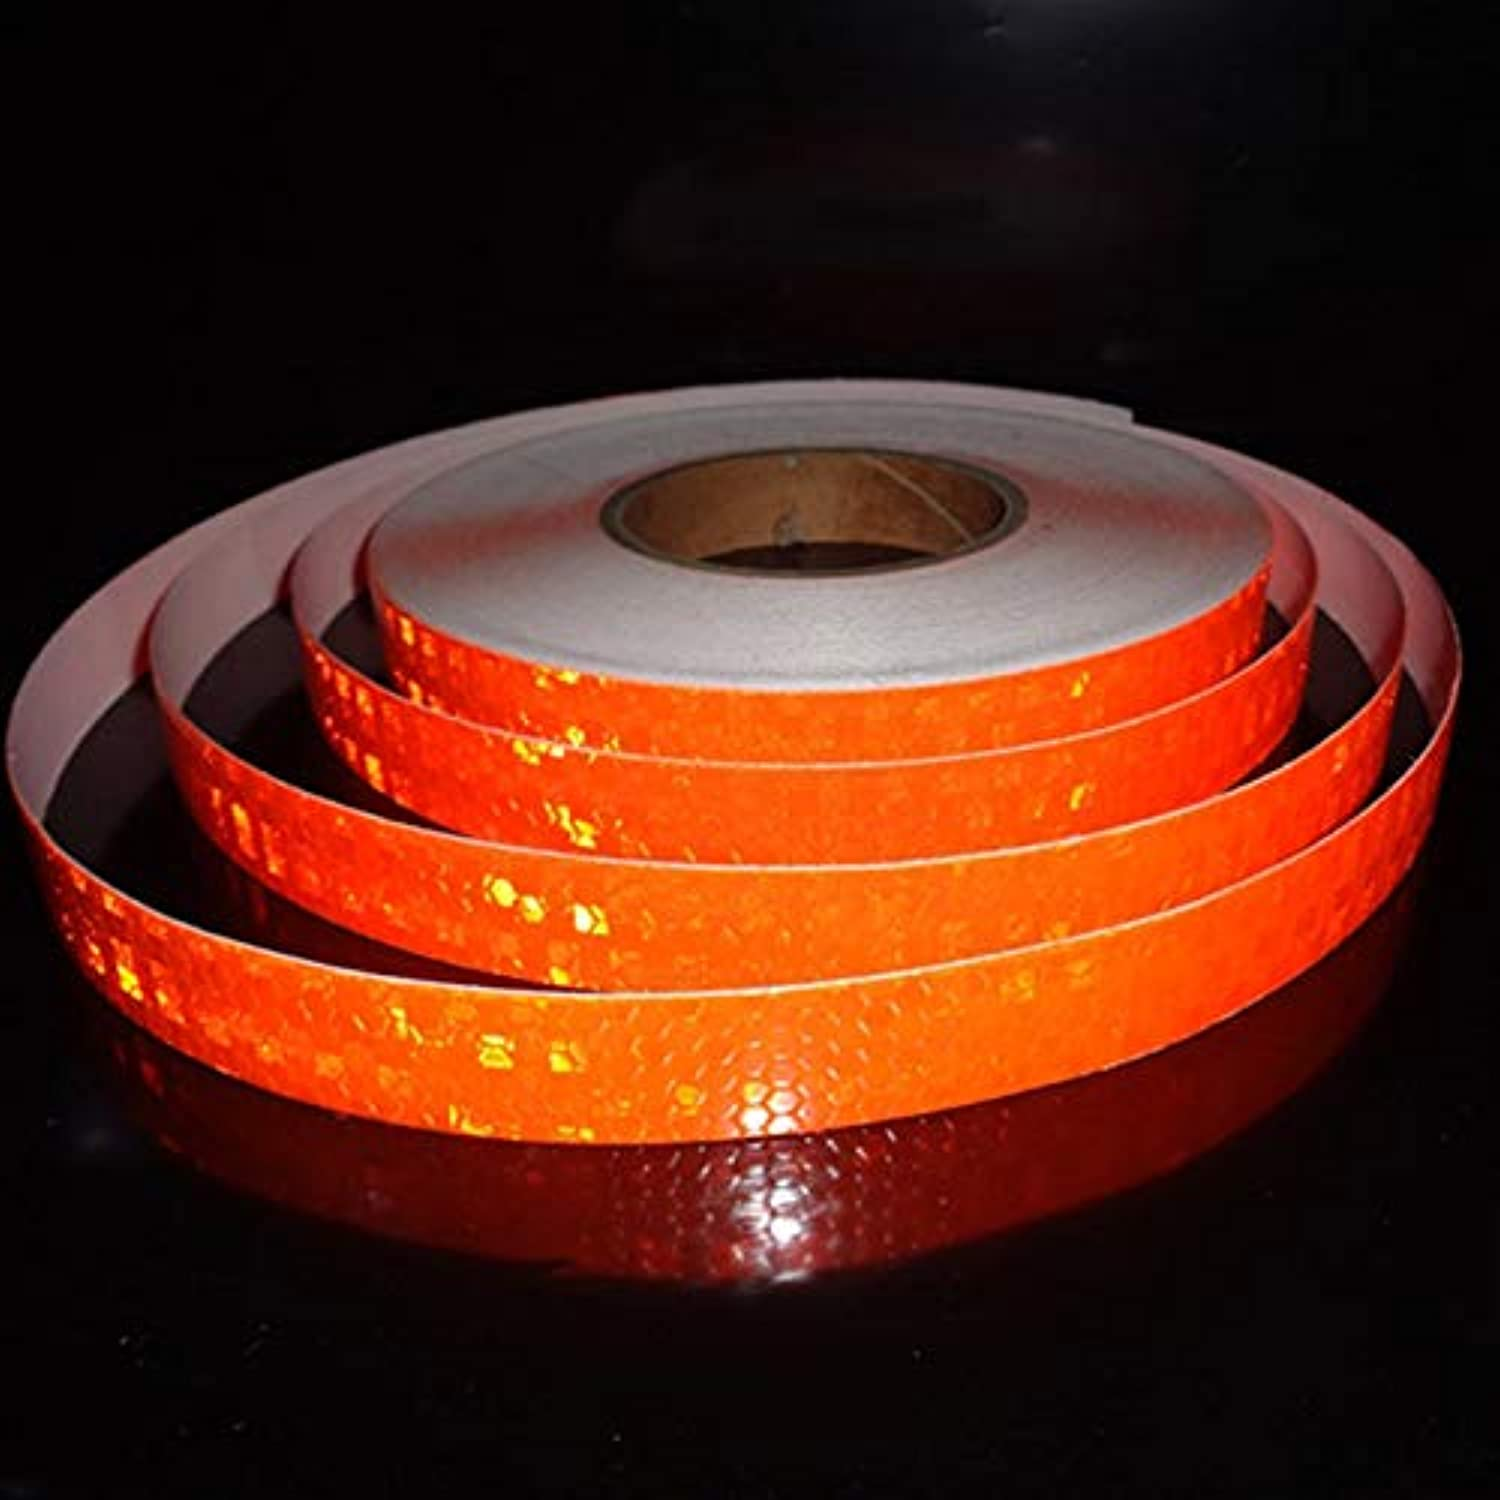 15 20 25 35mm Width 25 50m Small Size Lattice Tape Sticker Car Truck Motorcycle Safety Warning Strip Decal  (color Name  orange, Style  15mm x 50 Meters)